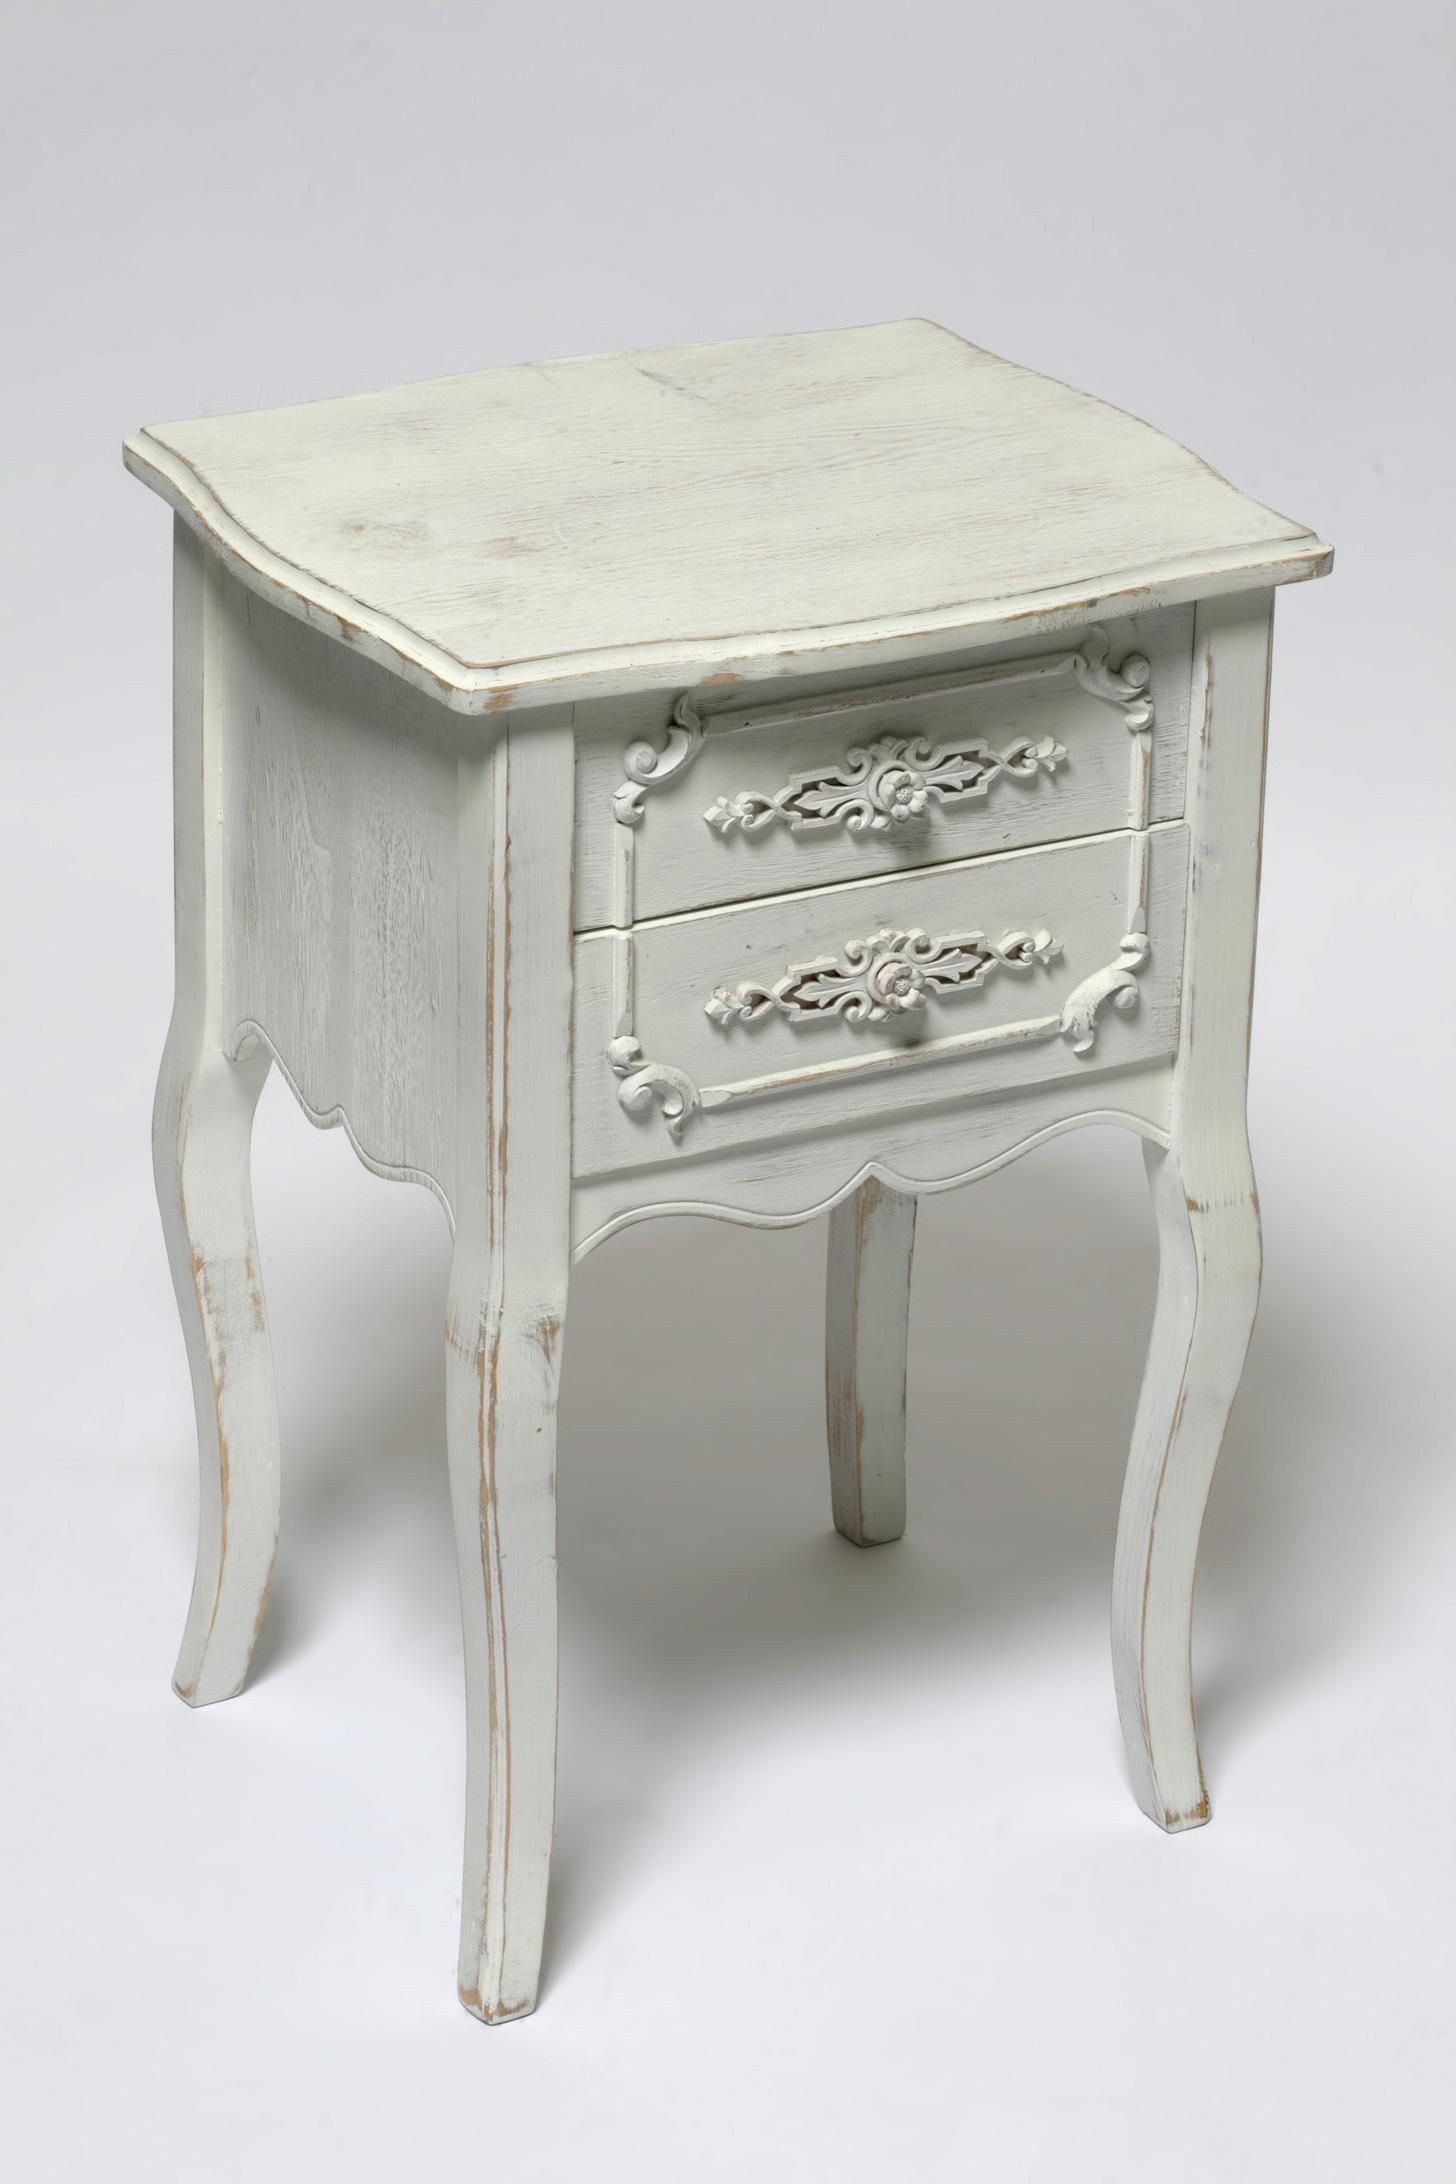 Small antique white side table httpcielobautista fine looking double drawers antique white bedside table with oak wood materials and white background images for furnitures modern master bedroom furnitures watchthetrailerfo